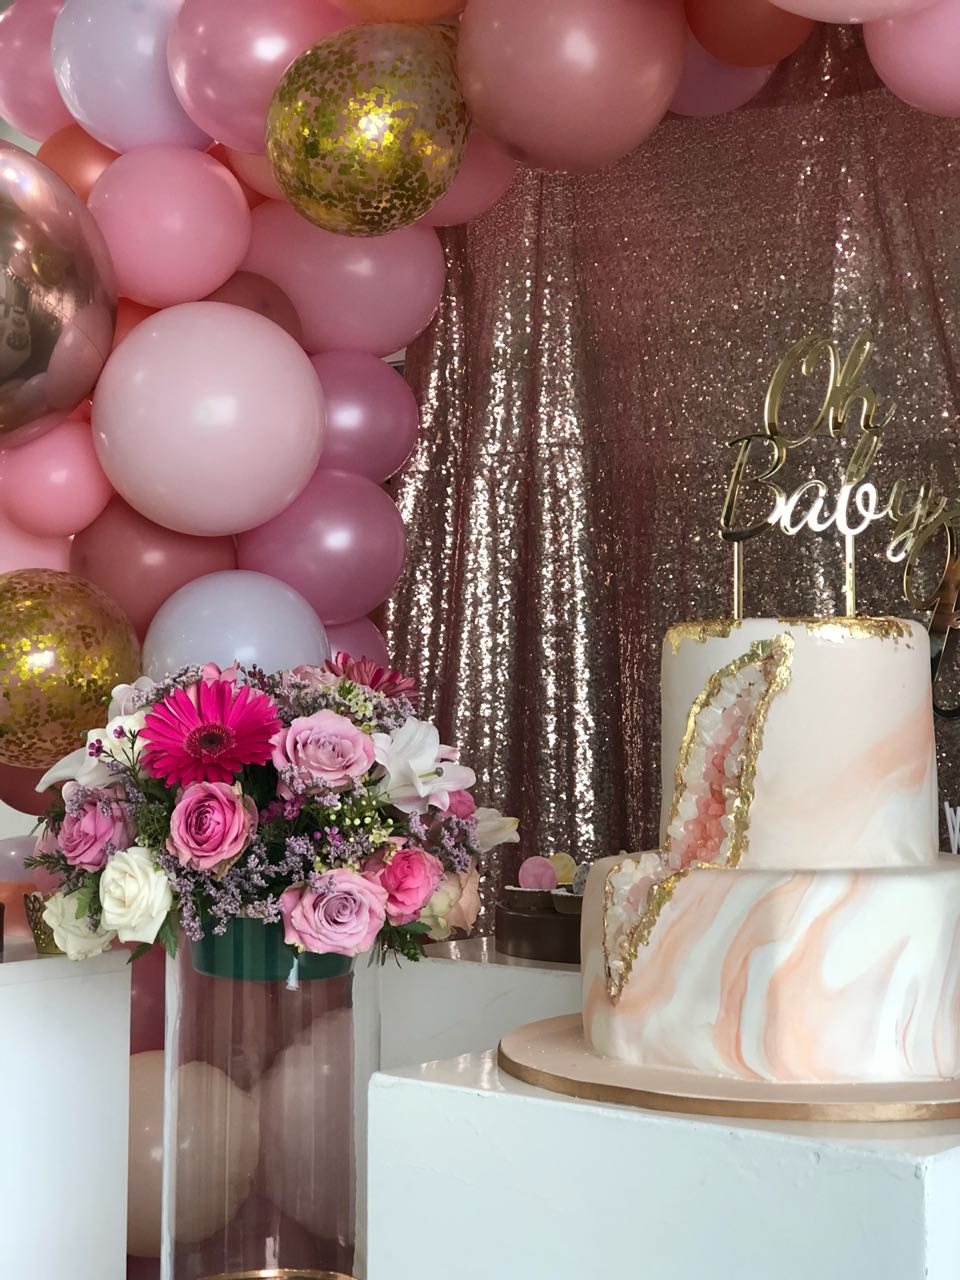 Baby Showers are fun and full of excitement. Impress your guests. This image was taken in Johannesburg South Africa